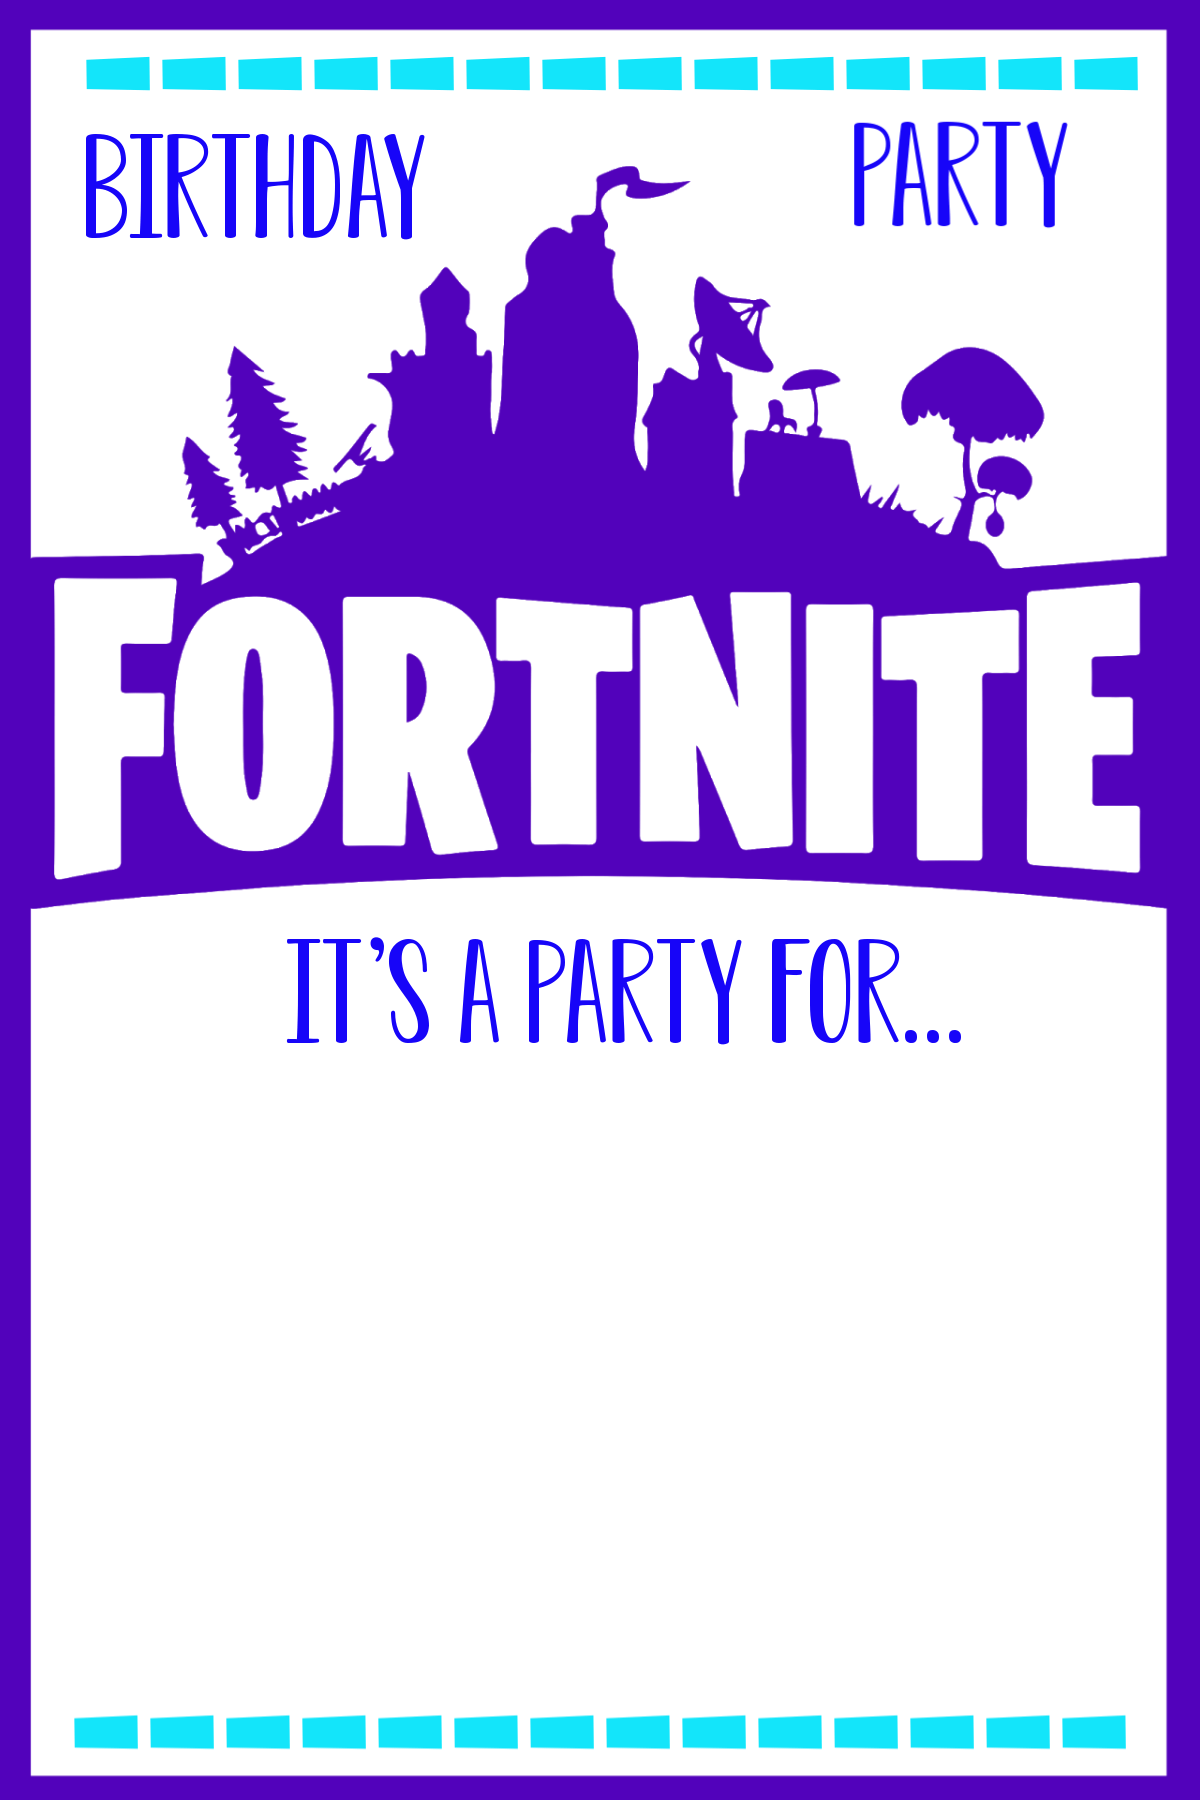 graphic relating to Fortnite Birthday Card Printable identified as Pleasurable Fortnite Birthday Get together Enjoyment-Squared